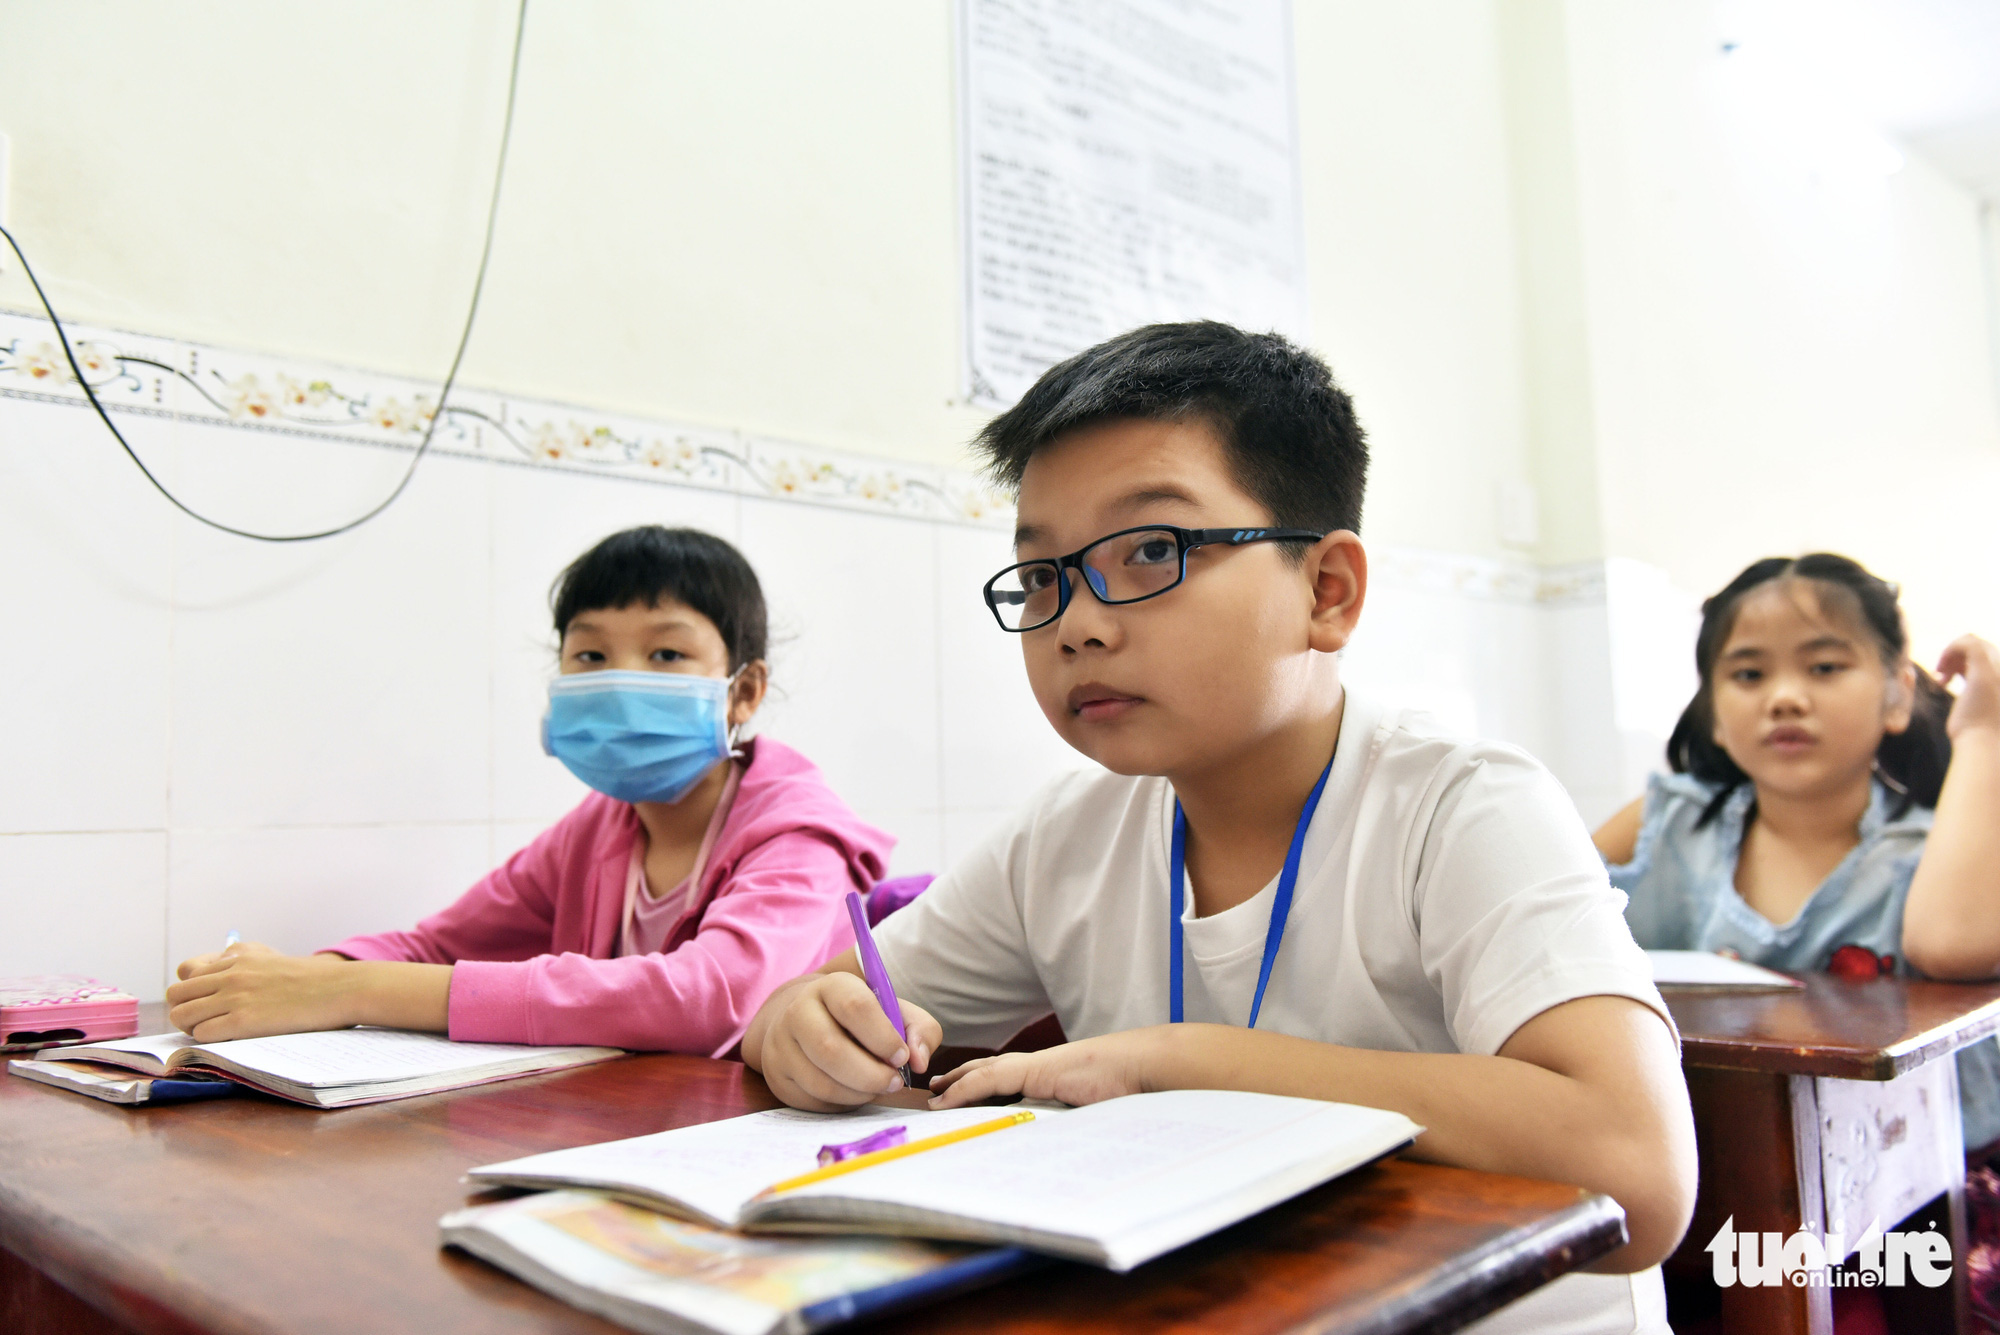 Children participate in a language class at La Pagoda in Go Vap District, Ho Chi Minh City, September 13, 2020. Photo: Duyen Phan / Tuoi Tre